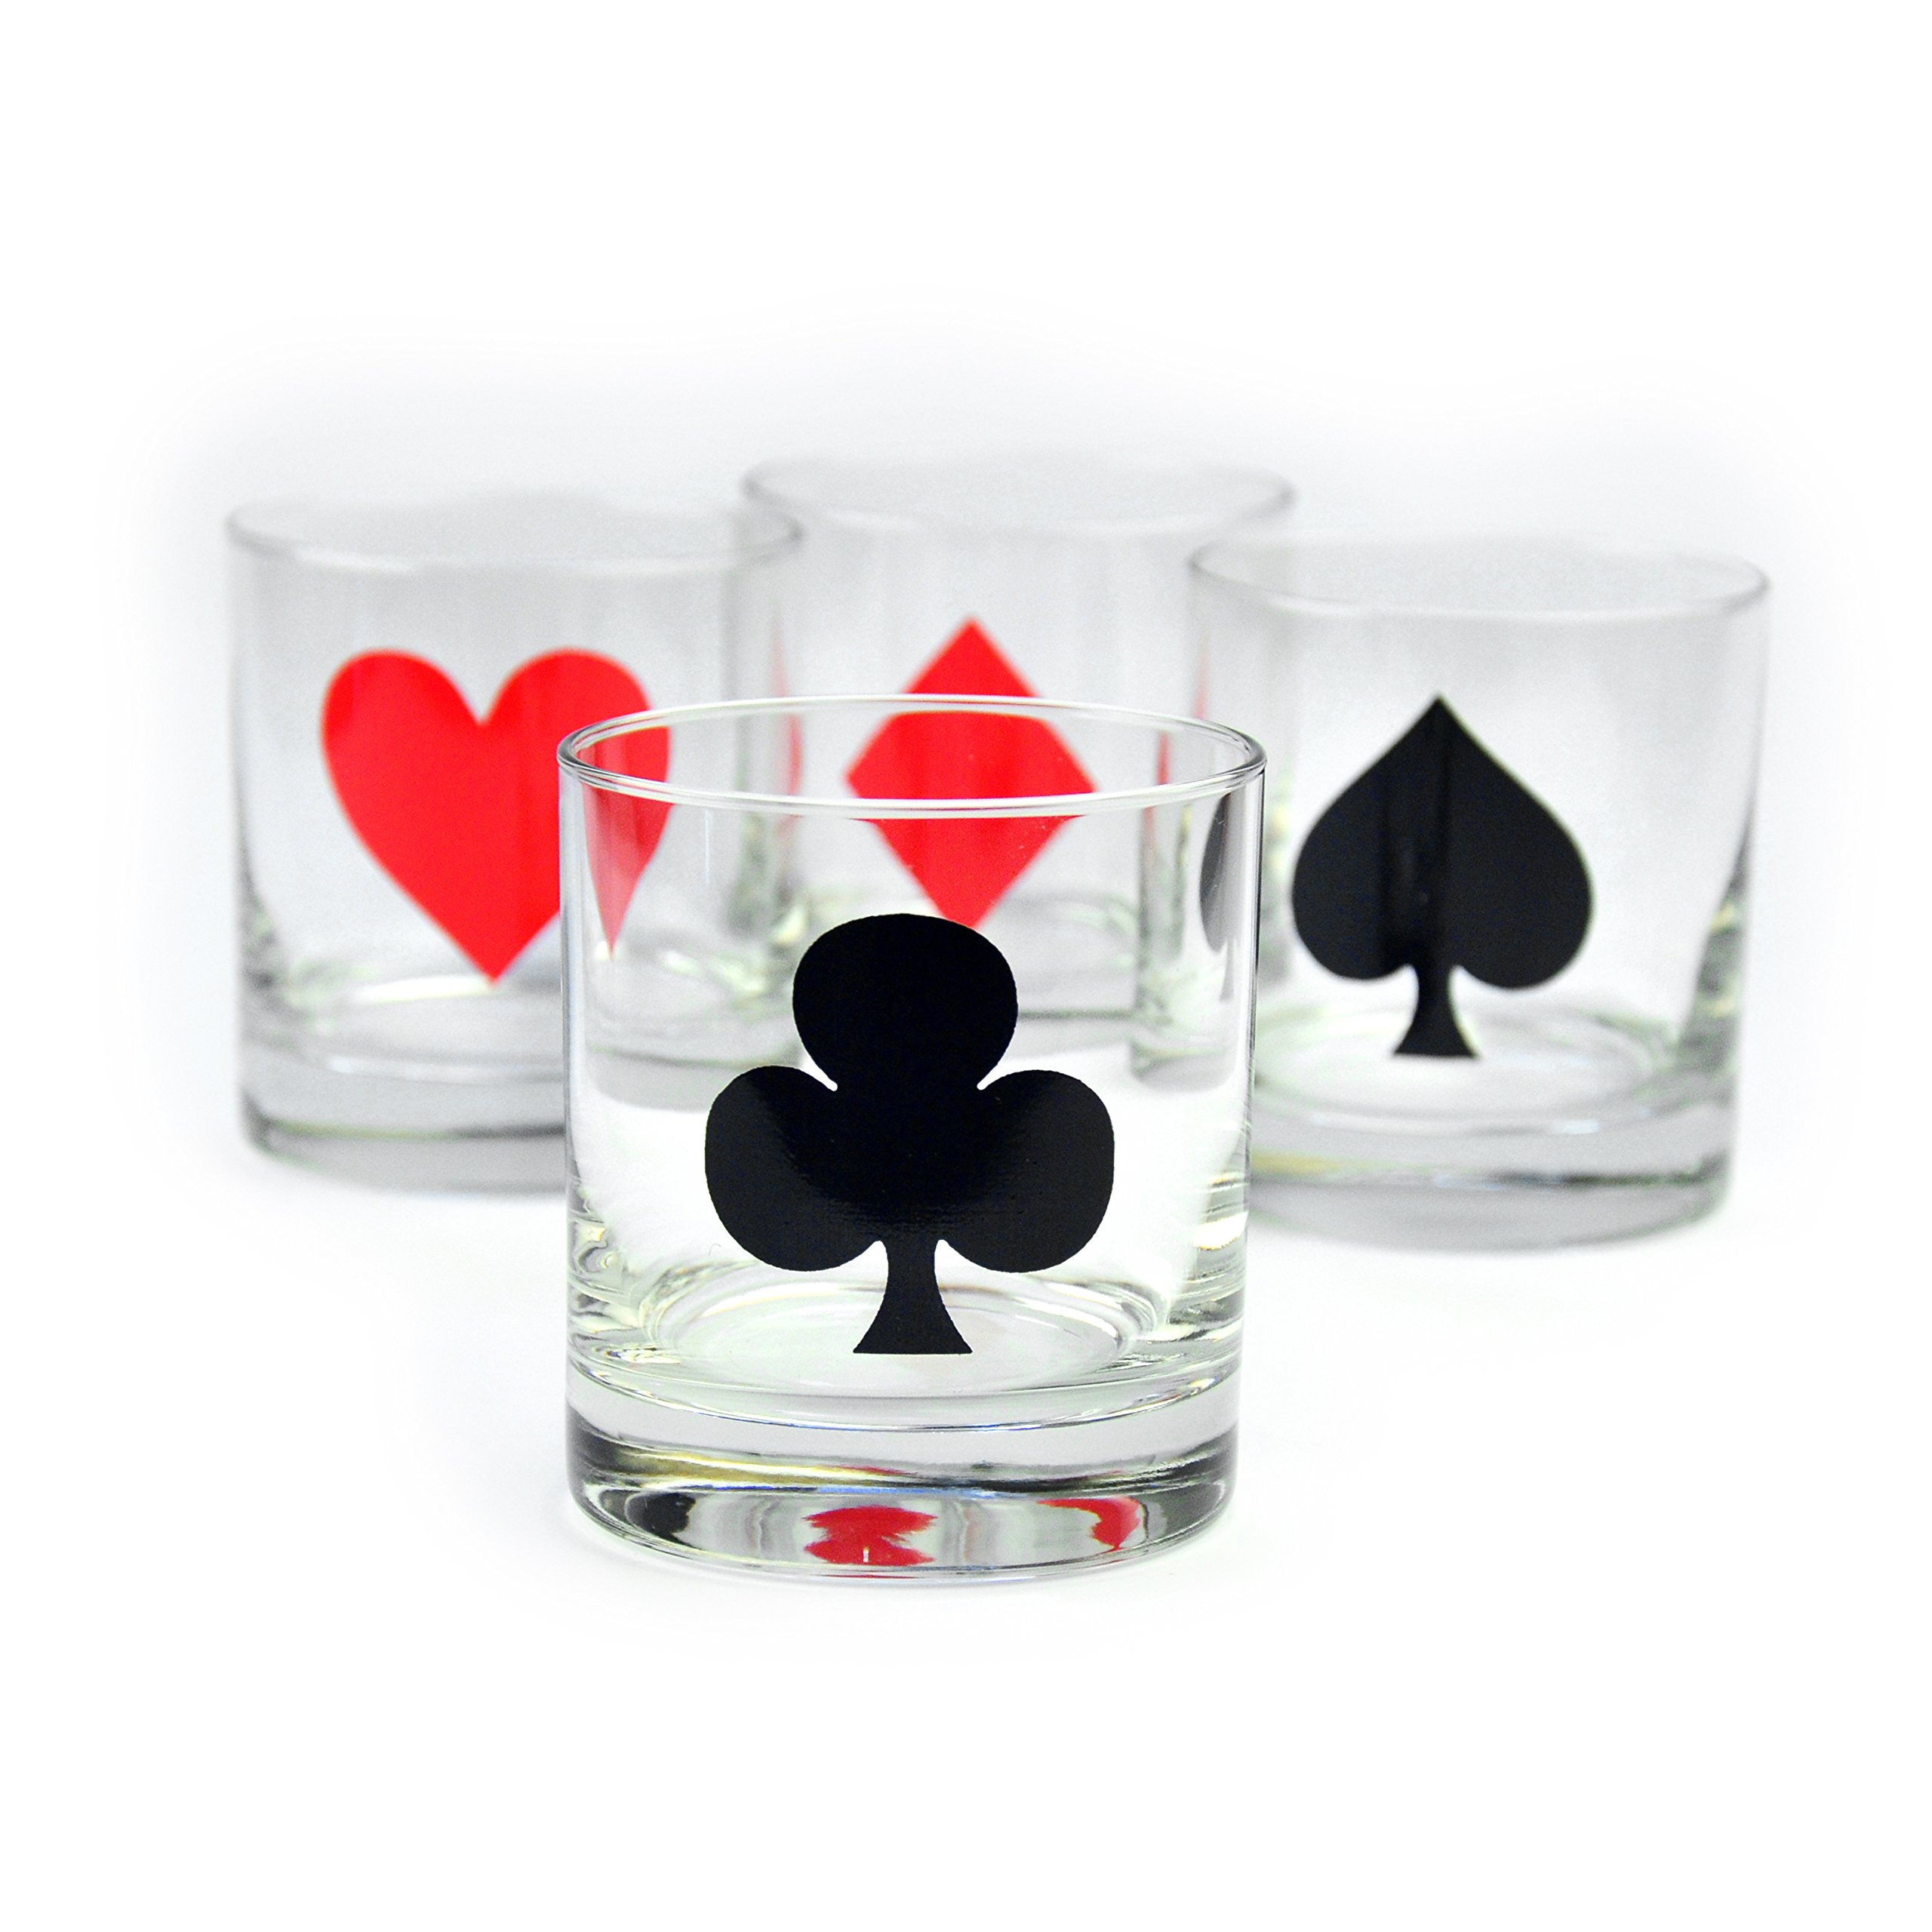 Card Suits Cocktail Glasses for Poker Night - Set of 4